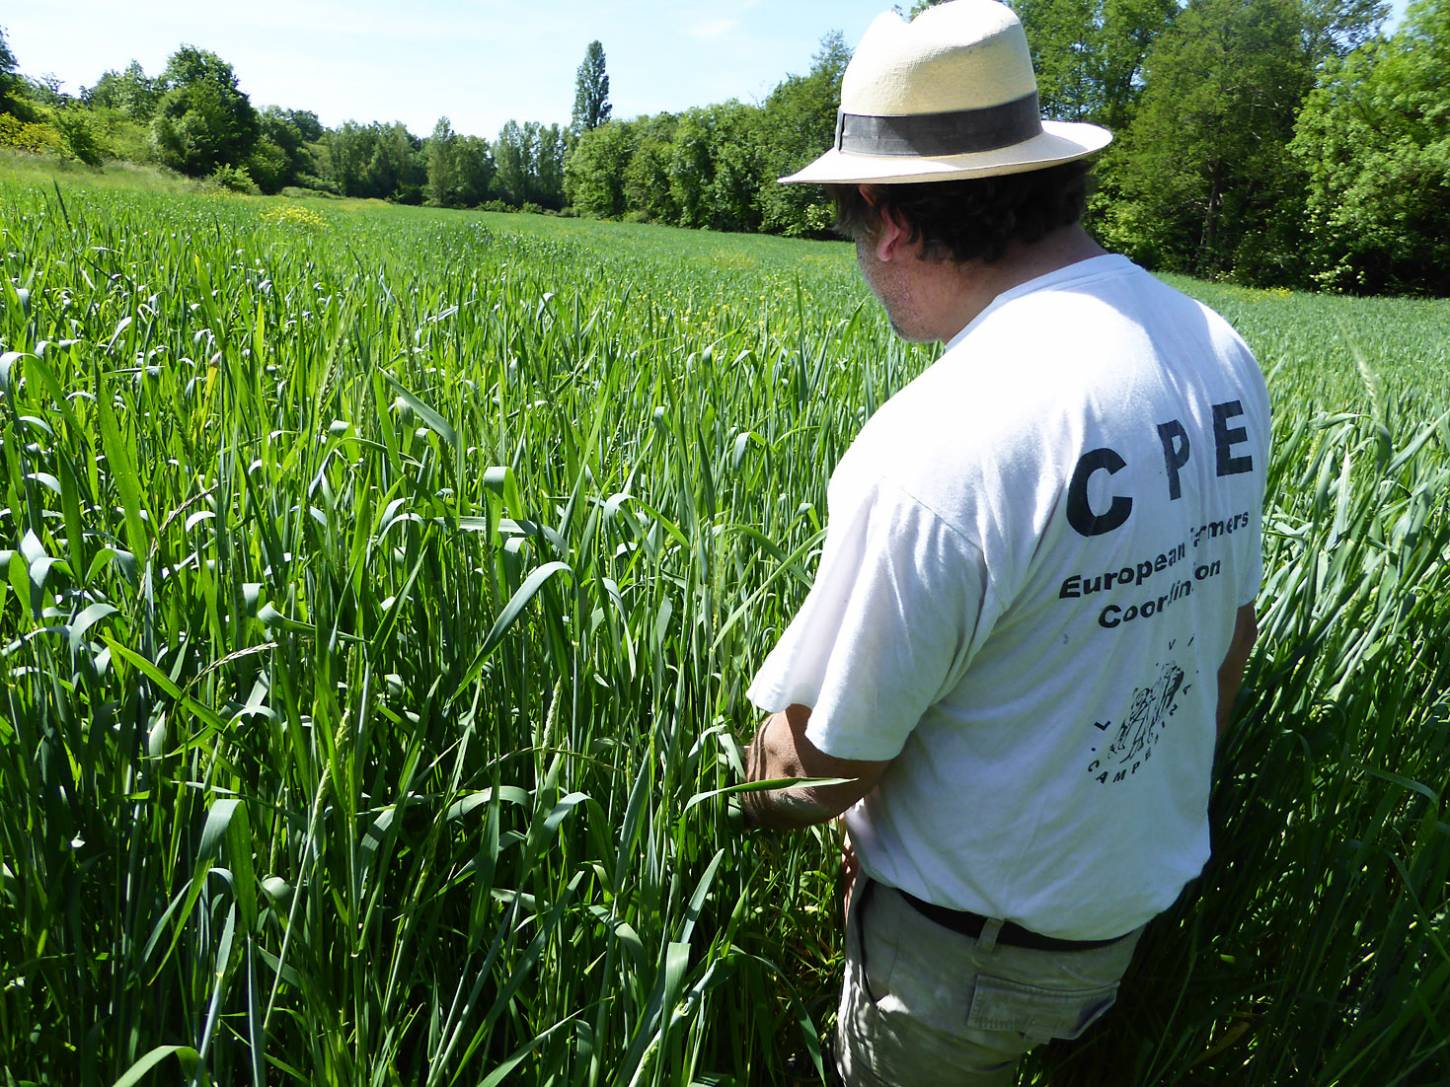 visiting heritage wheat farmer <a href='https://www.facebook.com/paysanbio.semencespaysannes' target='_blank'>Phillipe Guichard</a>, France, May '17 - 10:49am&nbsp;15<sup>th</sup>&nbsp;May.&nbsp;'17  <a href='http://maps.google.com/?t=h&q=44.478203,0.656358&z=18&output=embed' target=_blank><img src='http://www.brockwell-bake.org.uk/img/marker.png' style='border:none;vertical-align:top' height=16px></a>